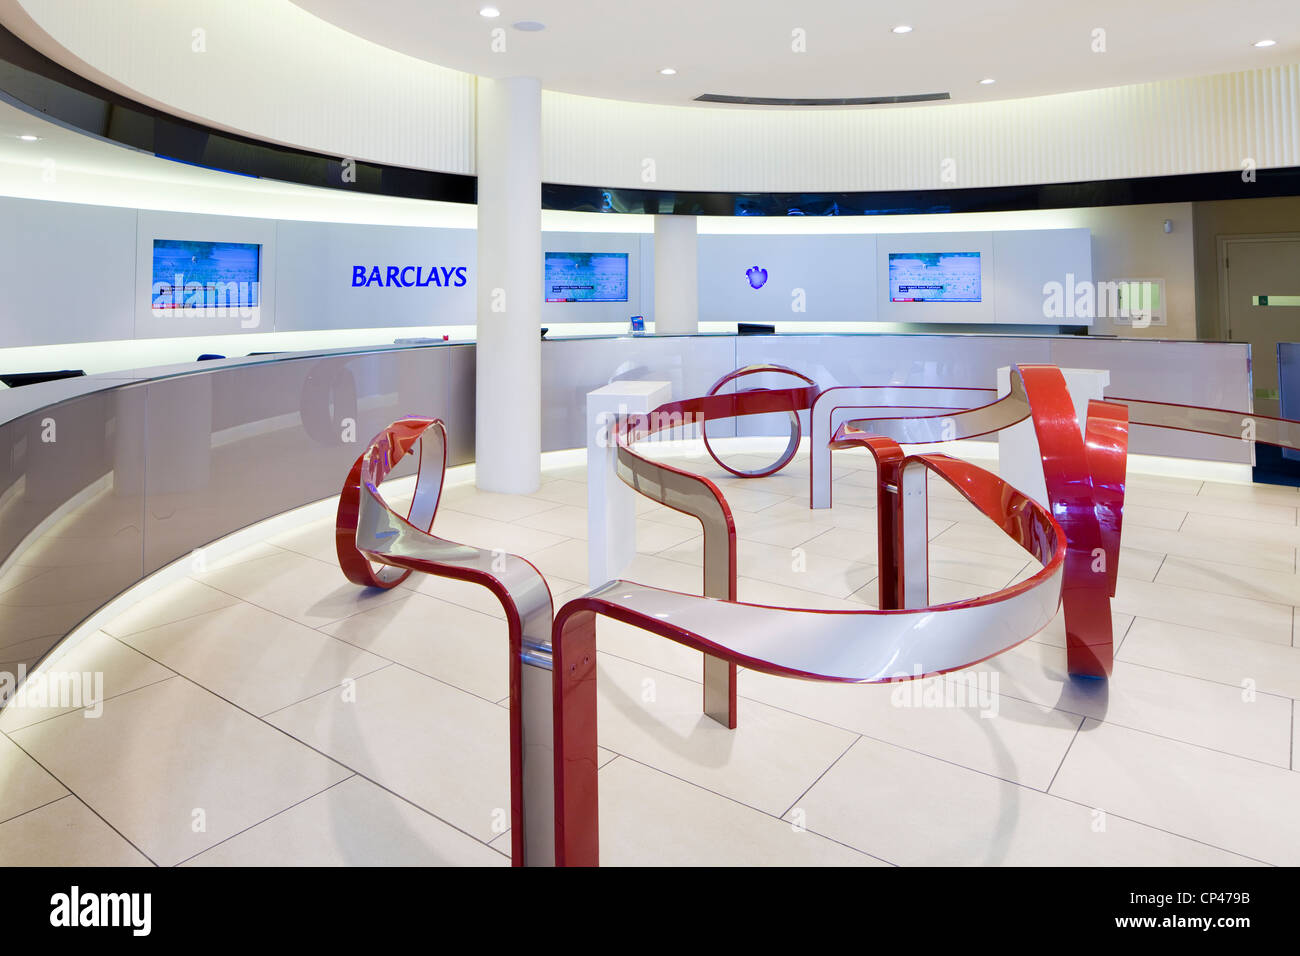 Barclays Bank-Interieur Stockfoto, Bild: 48036727 - Alamy